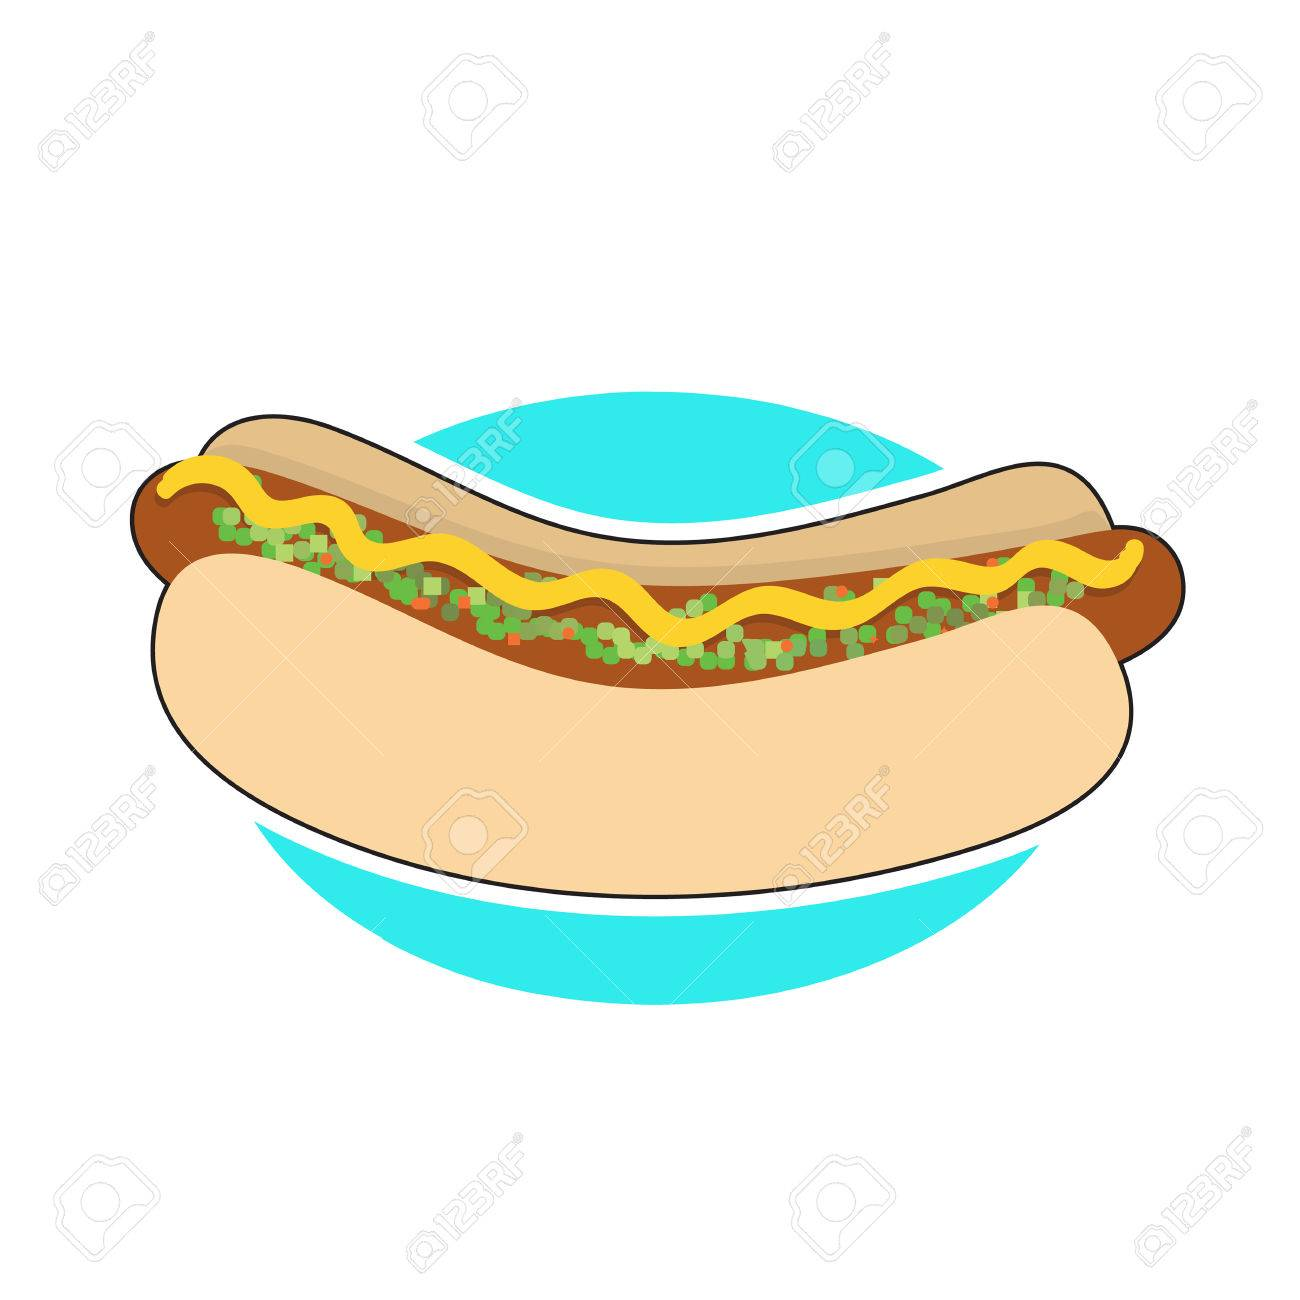 A hot dog in a bun with mustrad and relish - 66528656